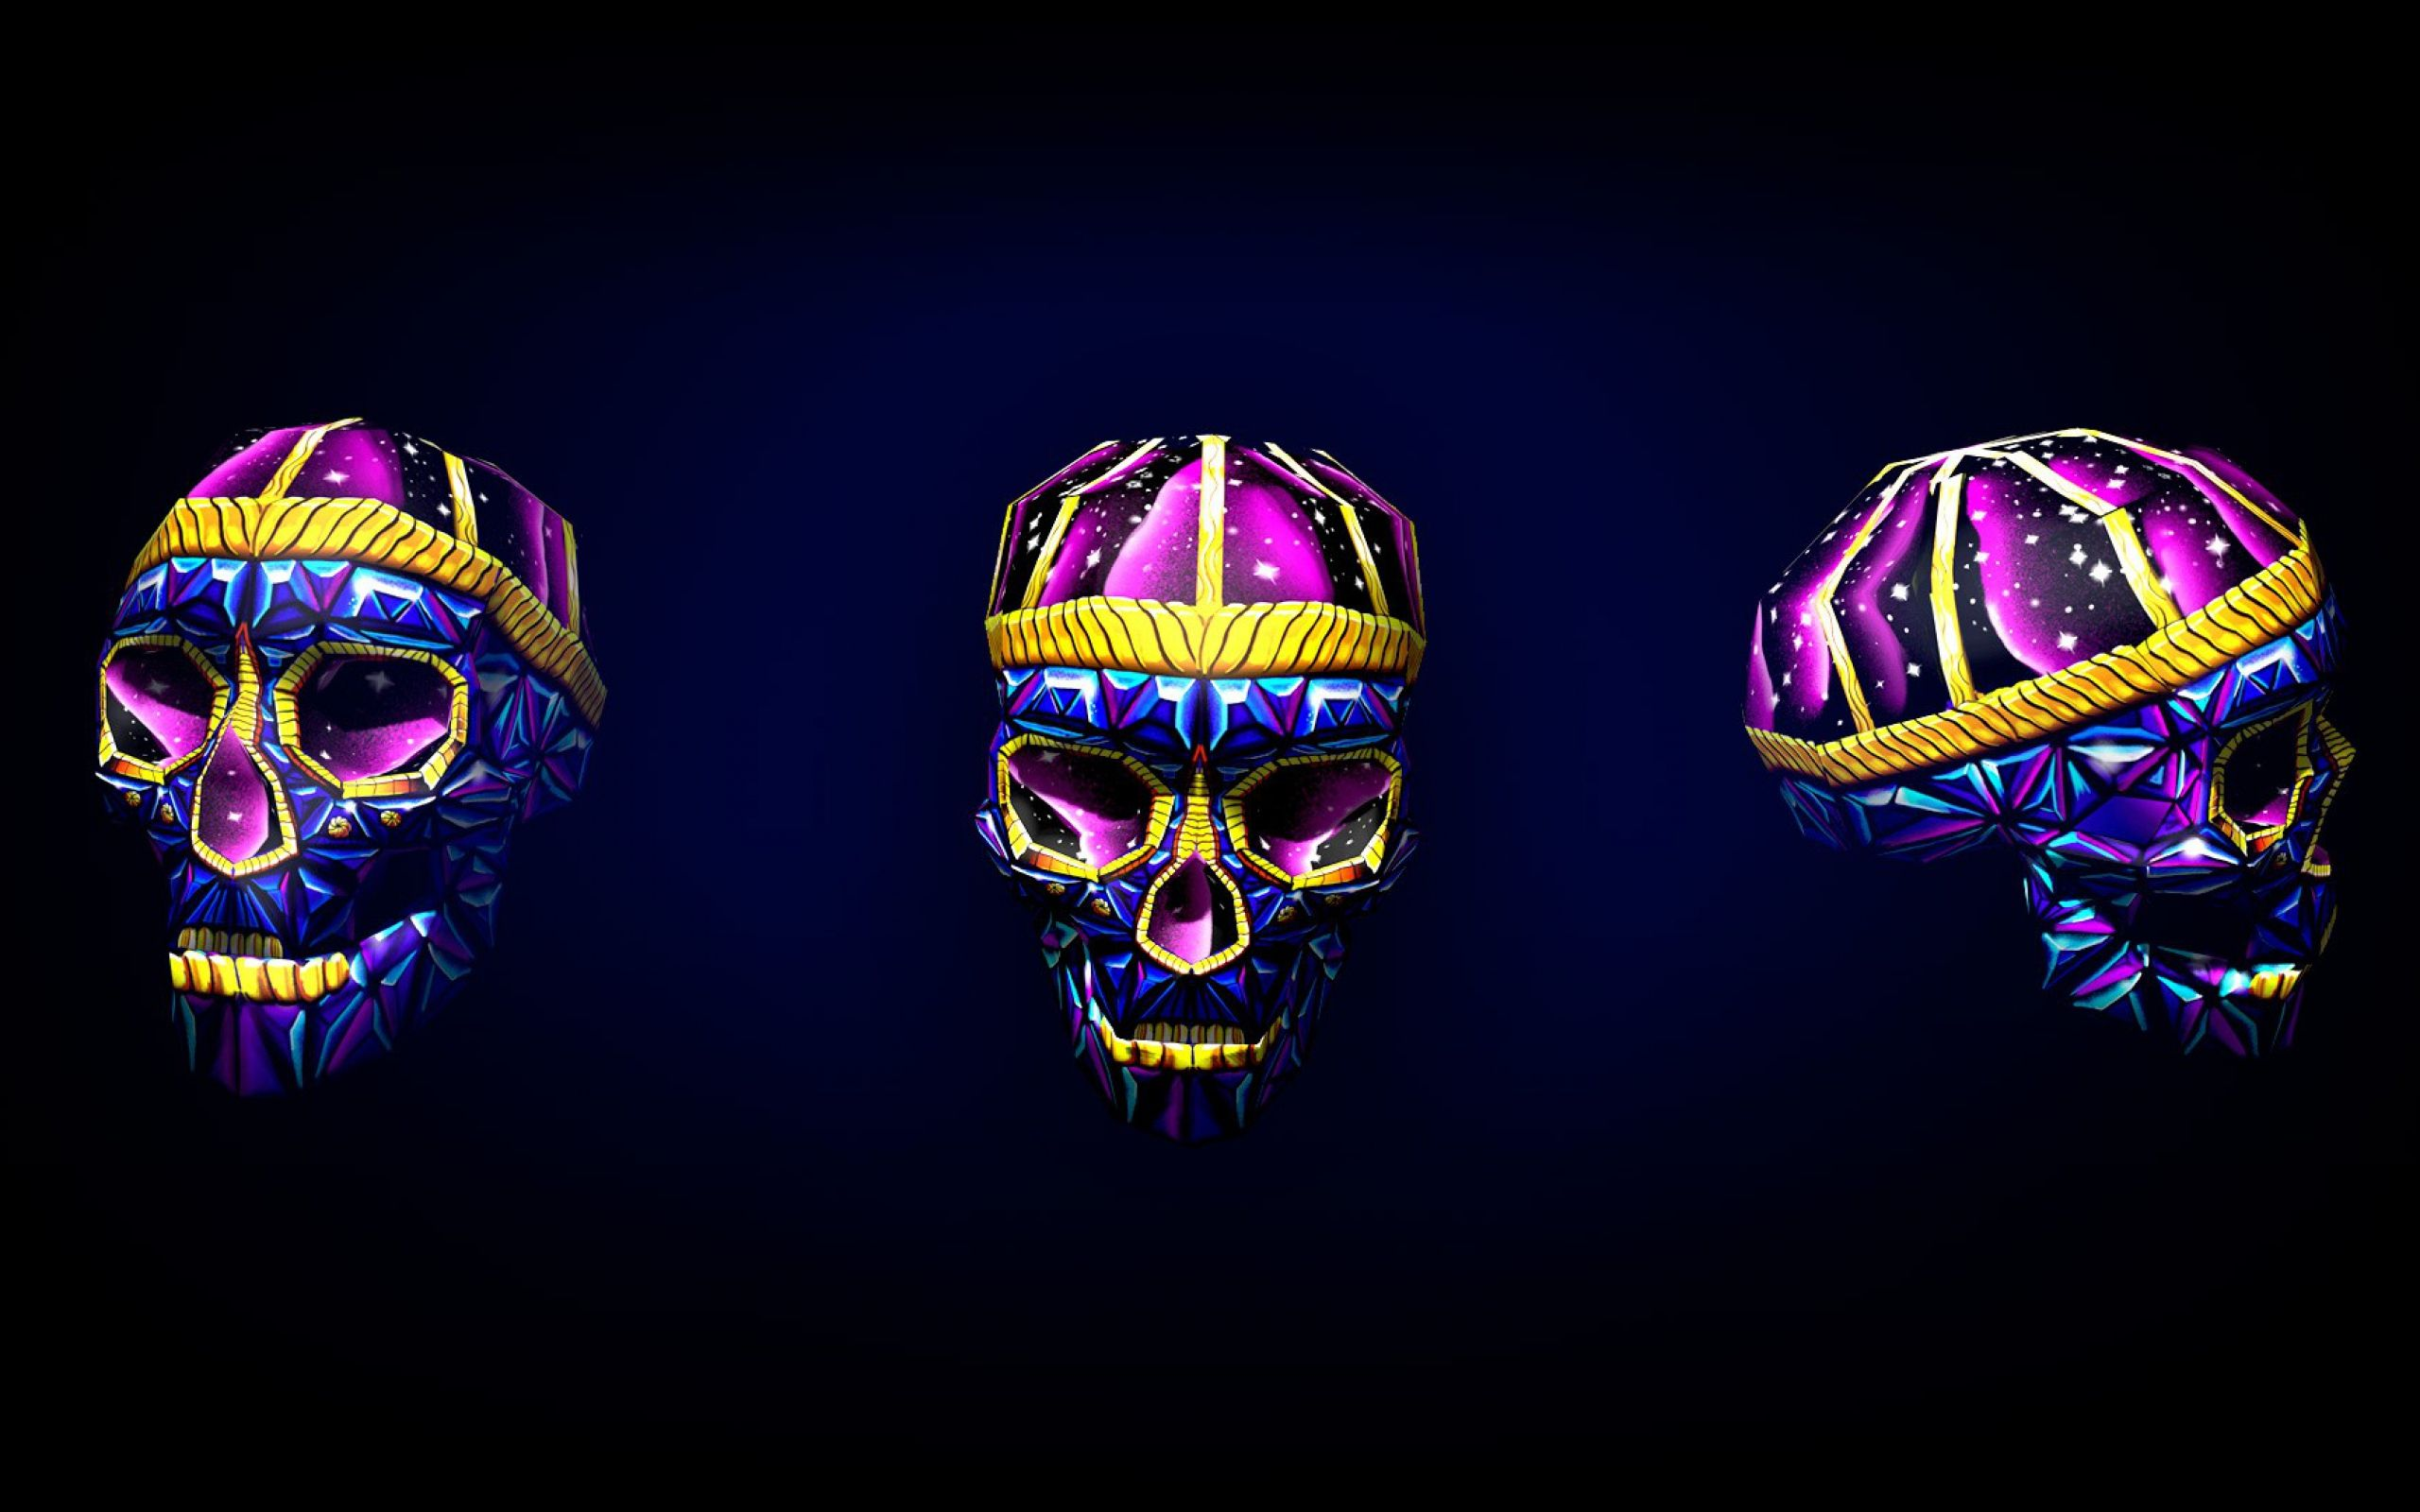 Pin by tracey olsen on beads pinterest bright 3d and wallpaper best skull wallpaper desktop background for any computer laptop tablet and phone voltagebd Choice Image